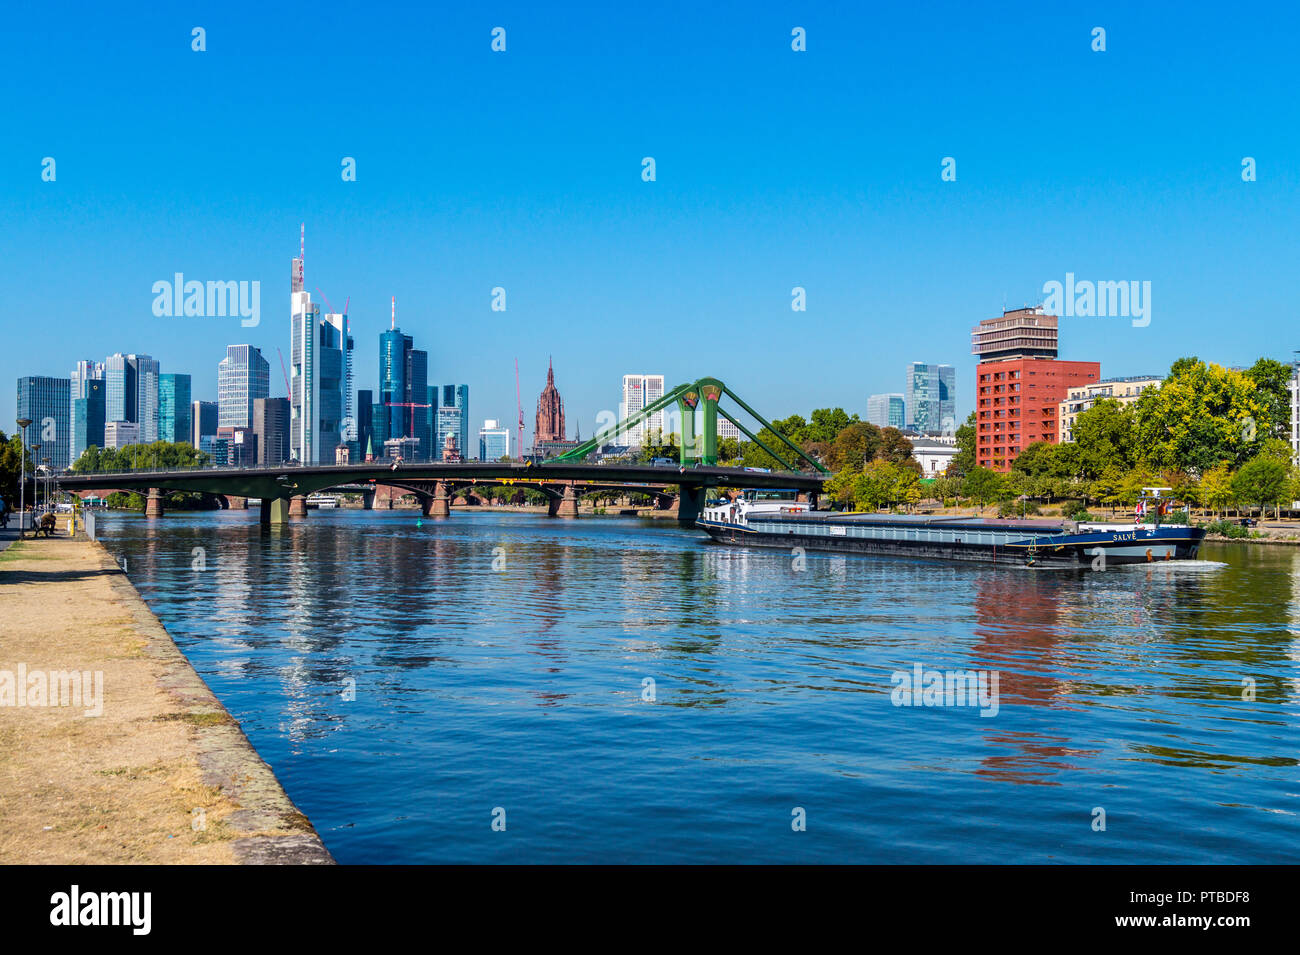 Inland waterway freighter 'Salve' ex Rotterdam and 'Mainhattan' financial district seen from the River Main, Frankfurt, Hessen, Germany - Stock Image